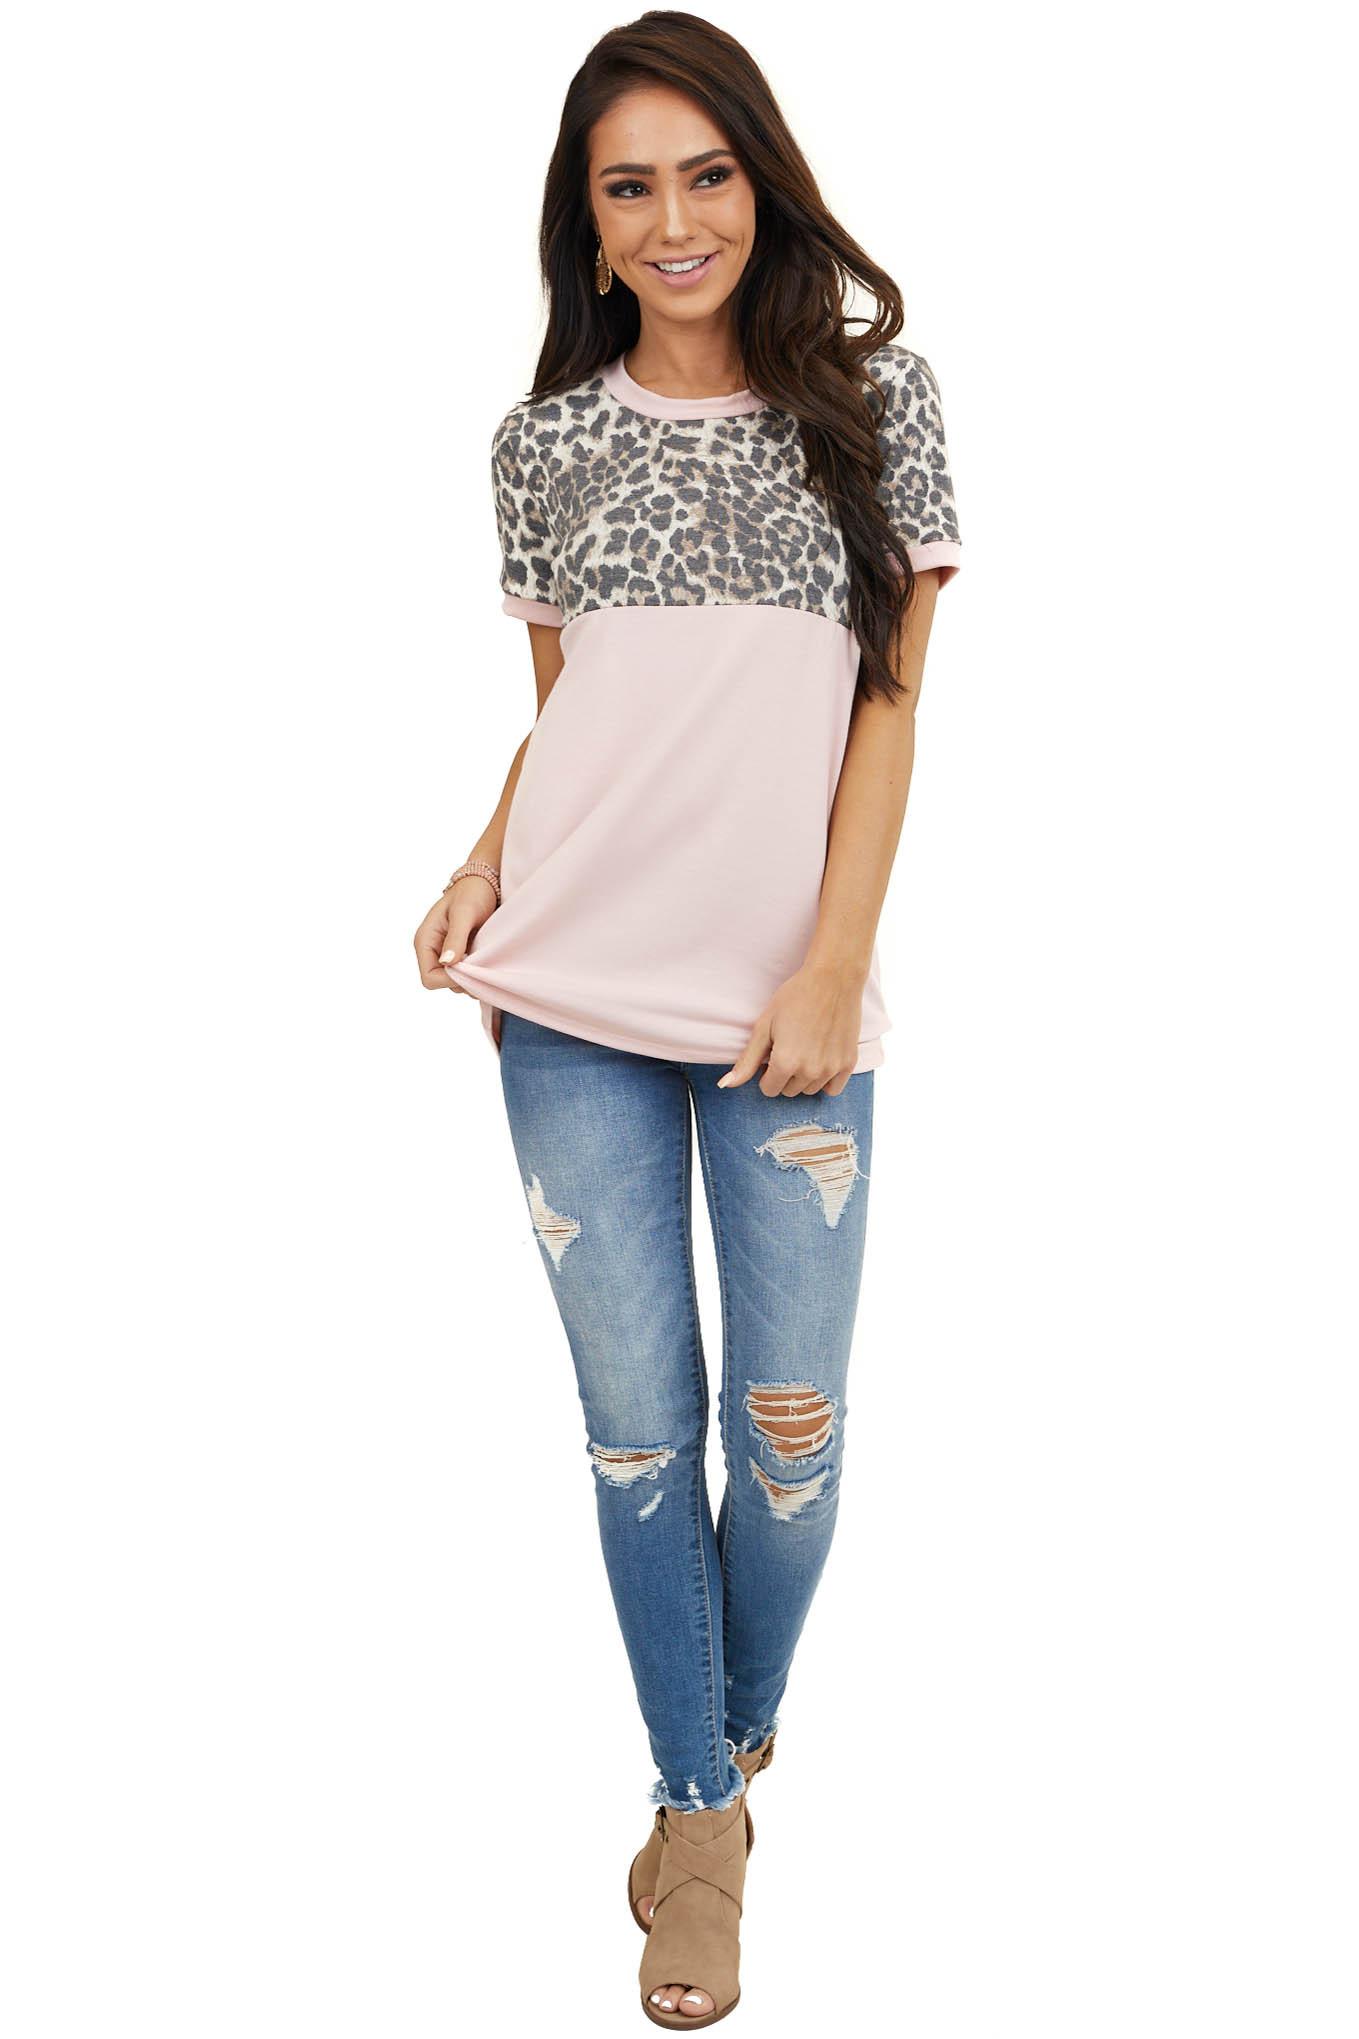 Blush Pink Short Sleeve Top with Leopard Print Colorblock